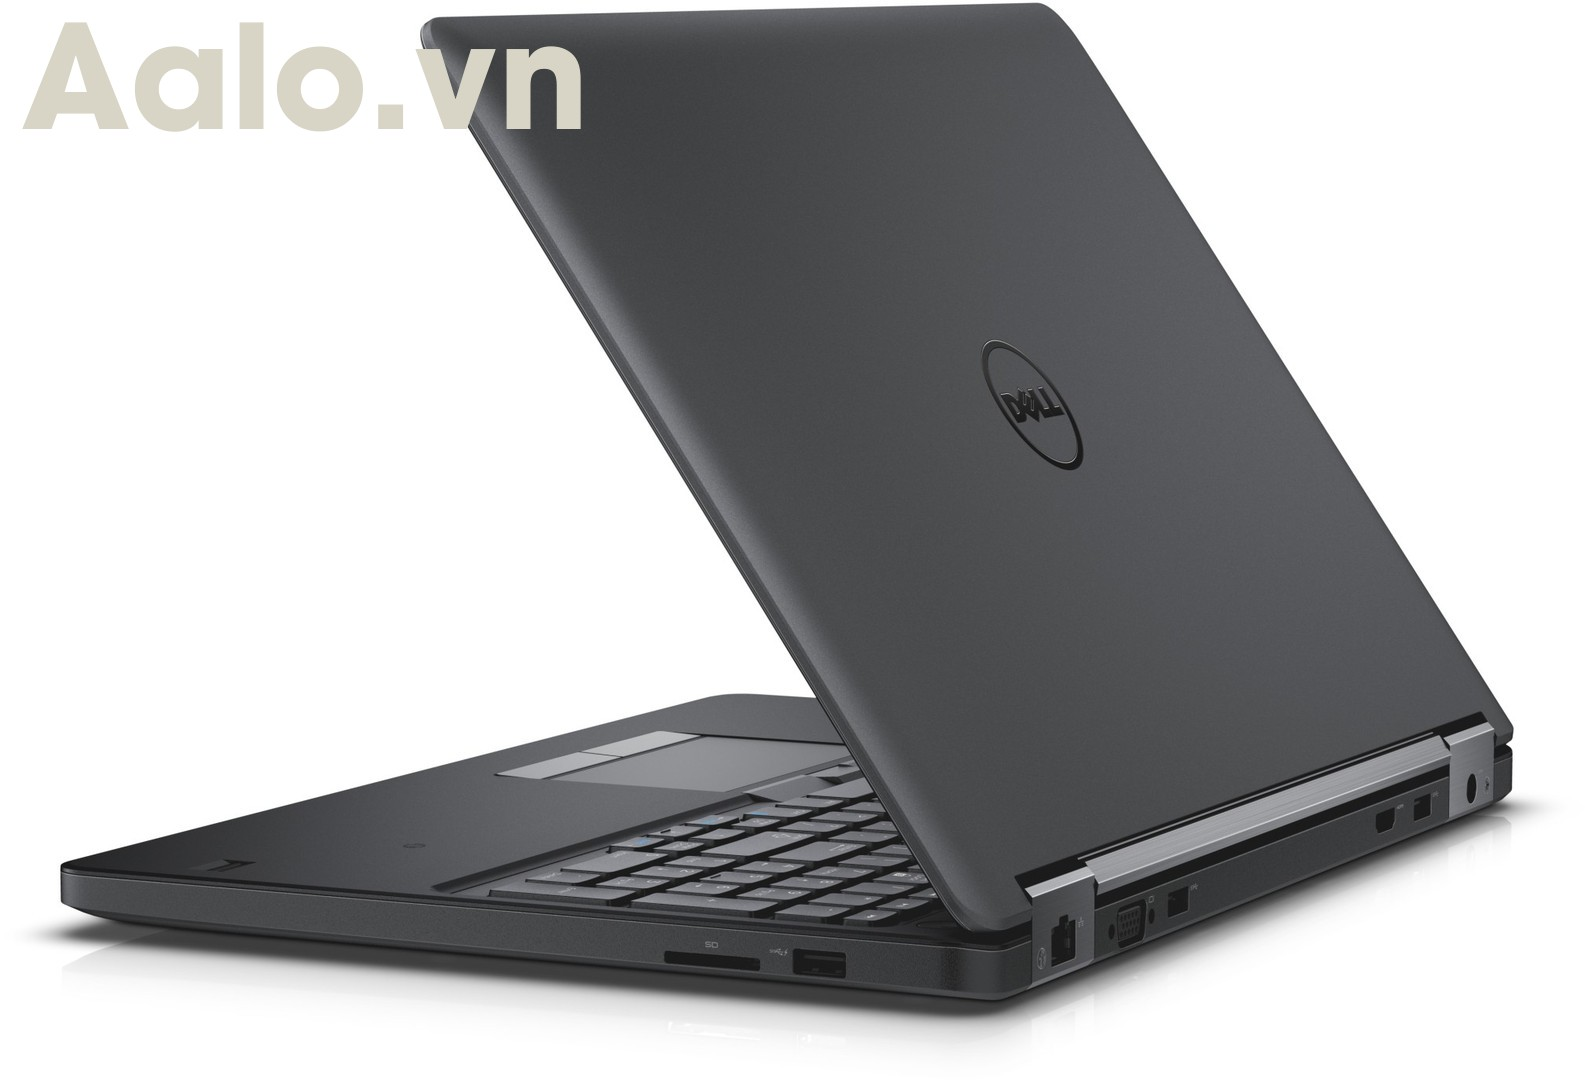 Laptop cũ Dell Latitude E5550 (I7 5600U/ 4GB/ HDD 320GB/ 15.6 inch HD)